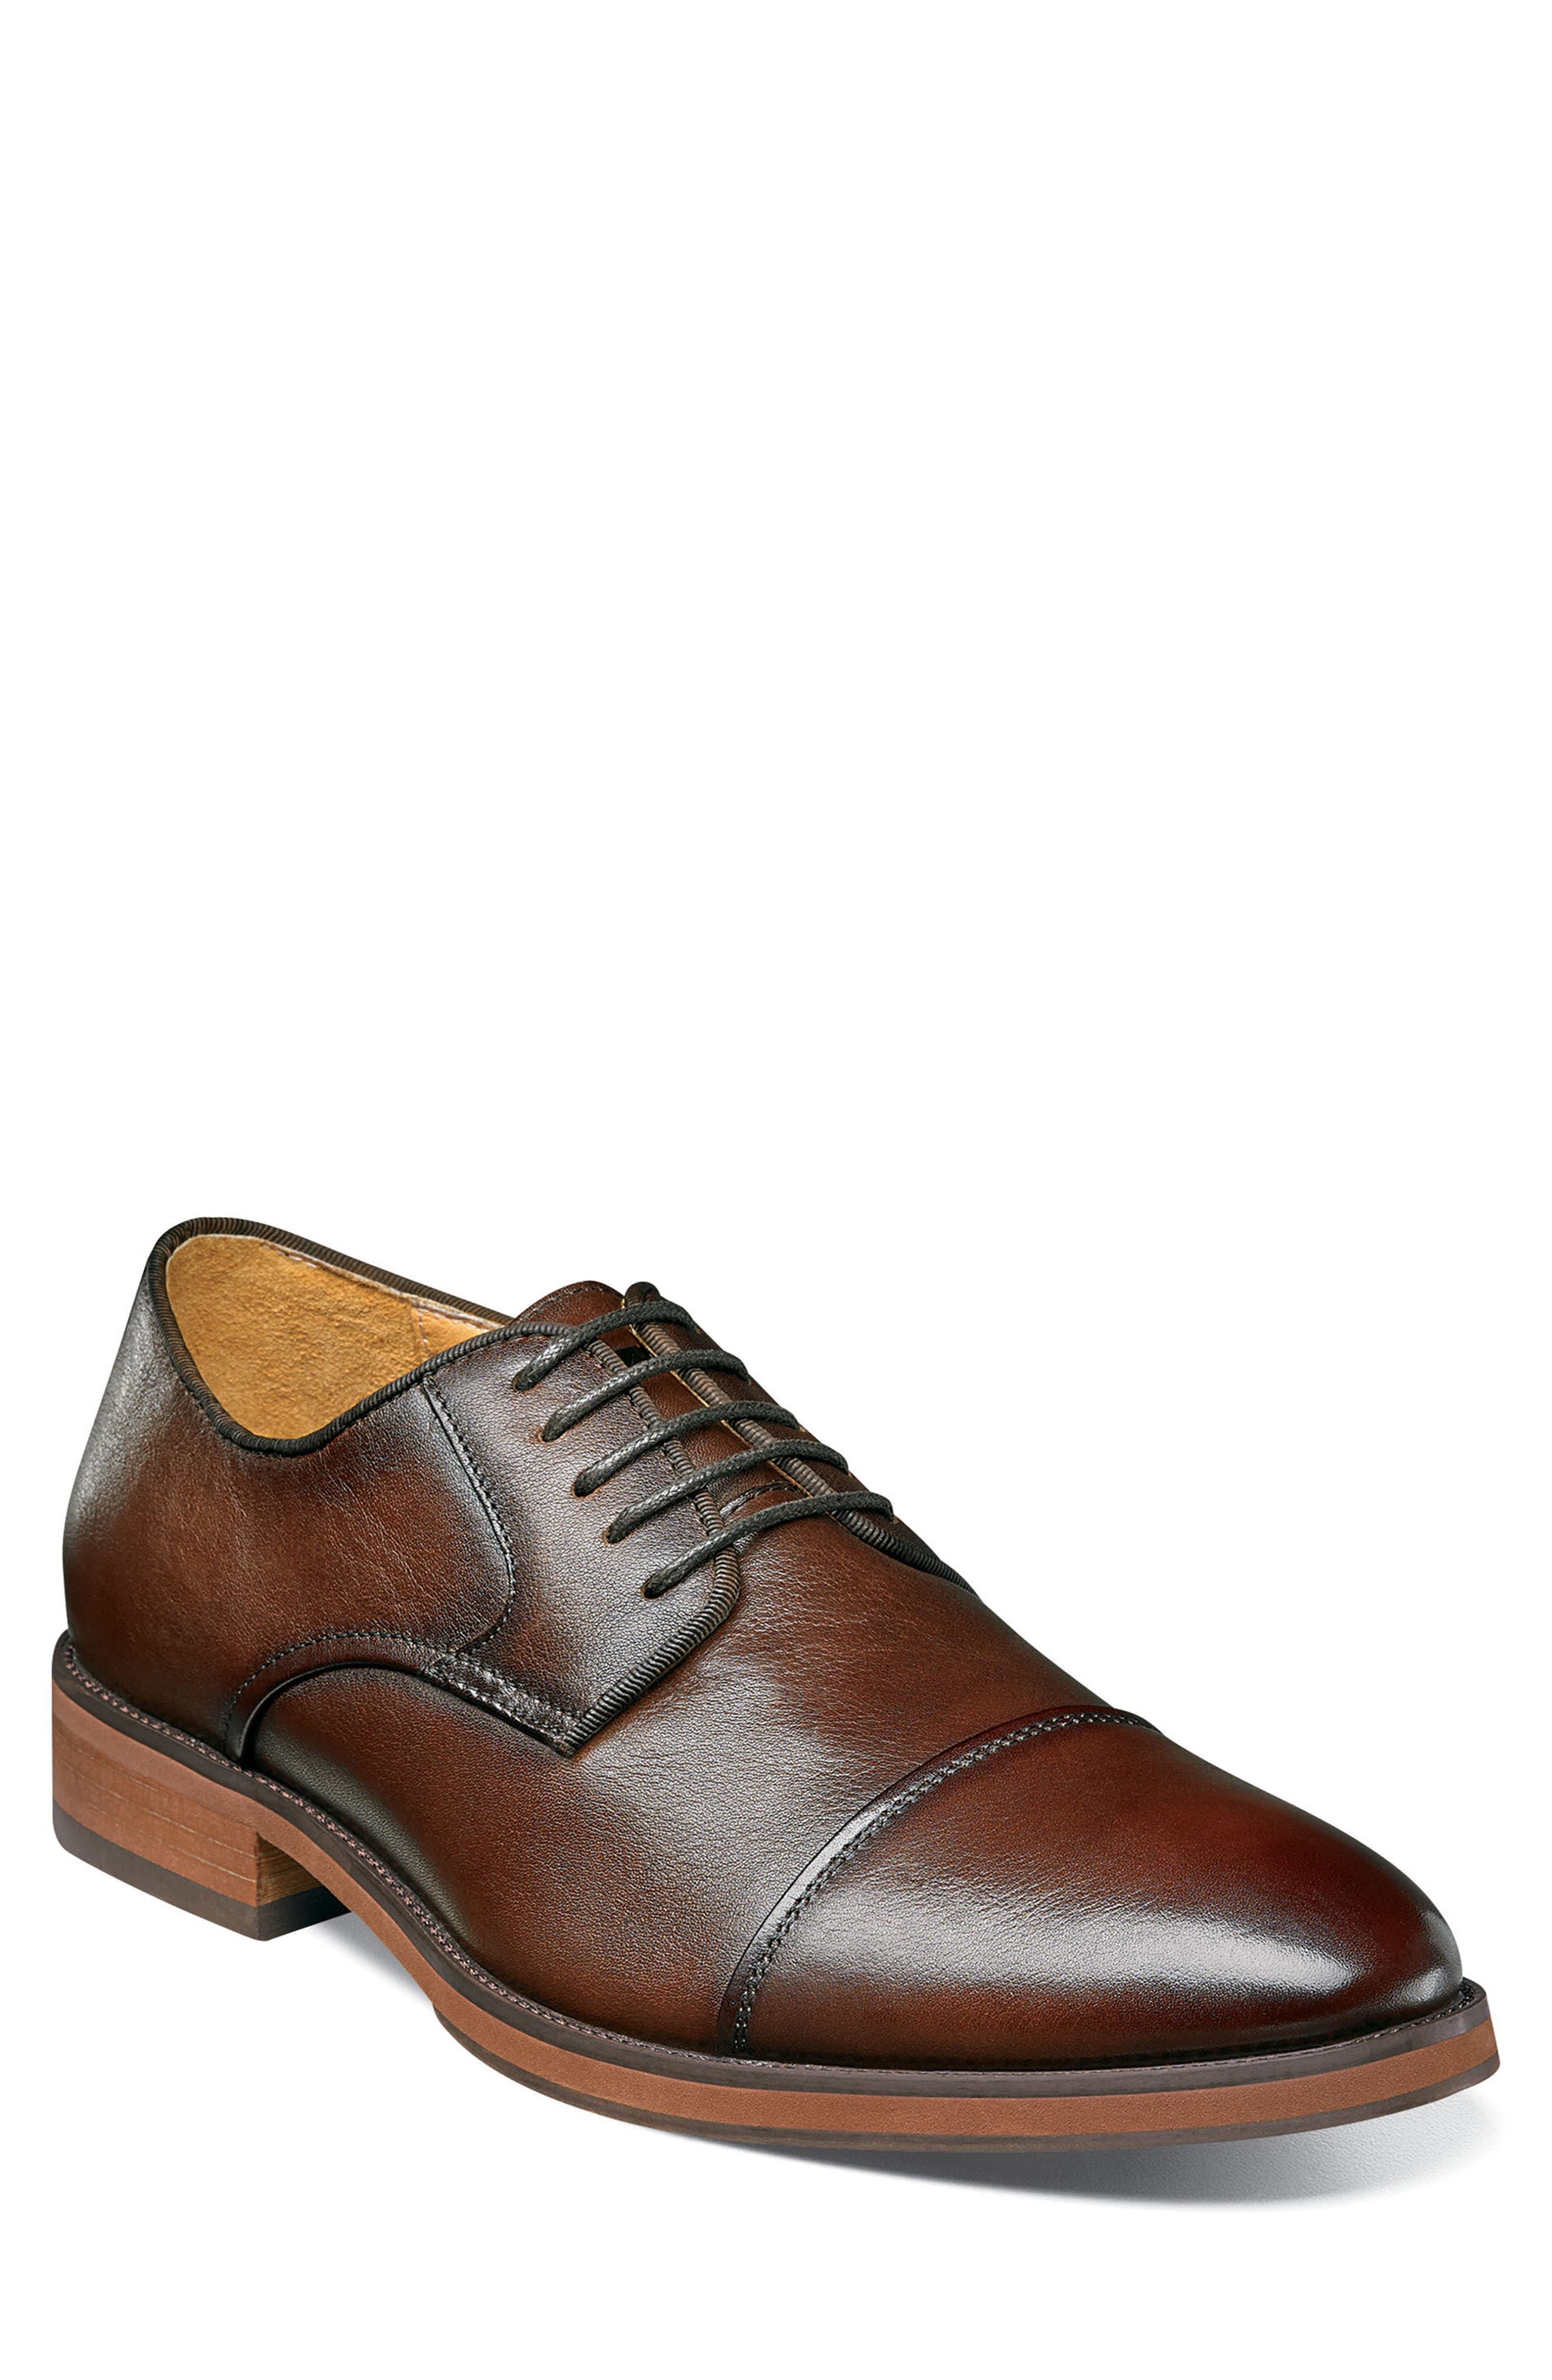 Blaze Cap Toe Derby,                         Main,                         color, Cognac Leather